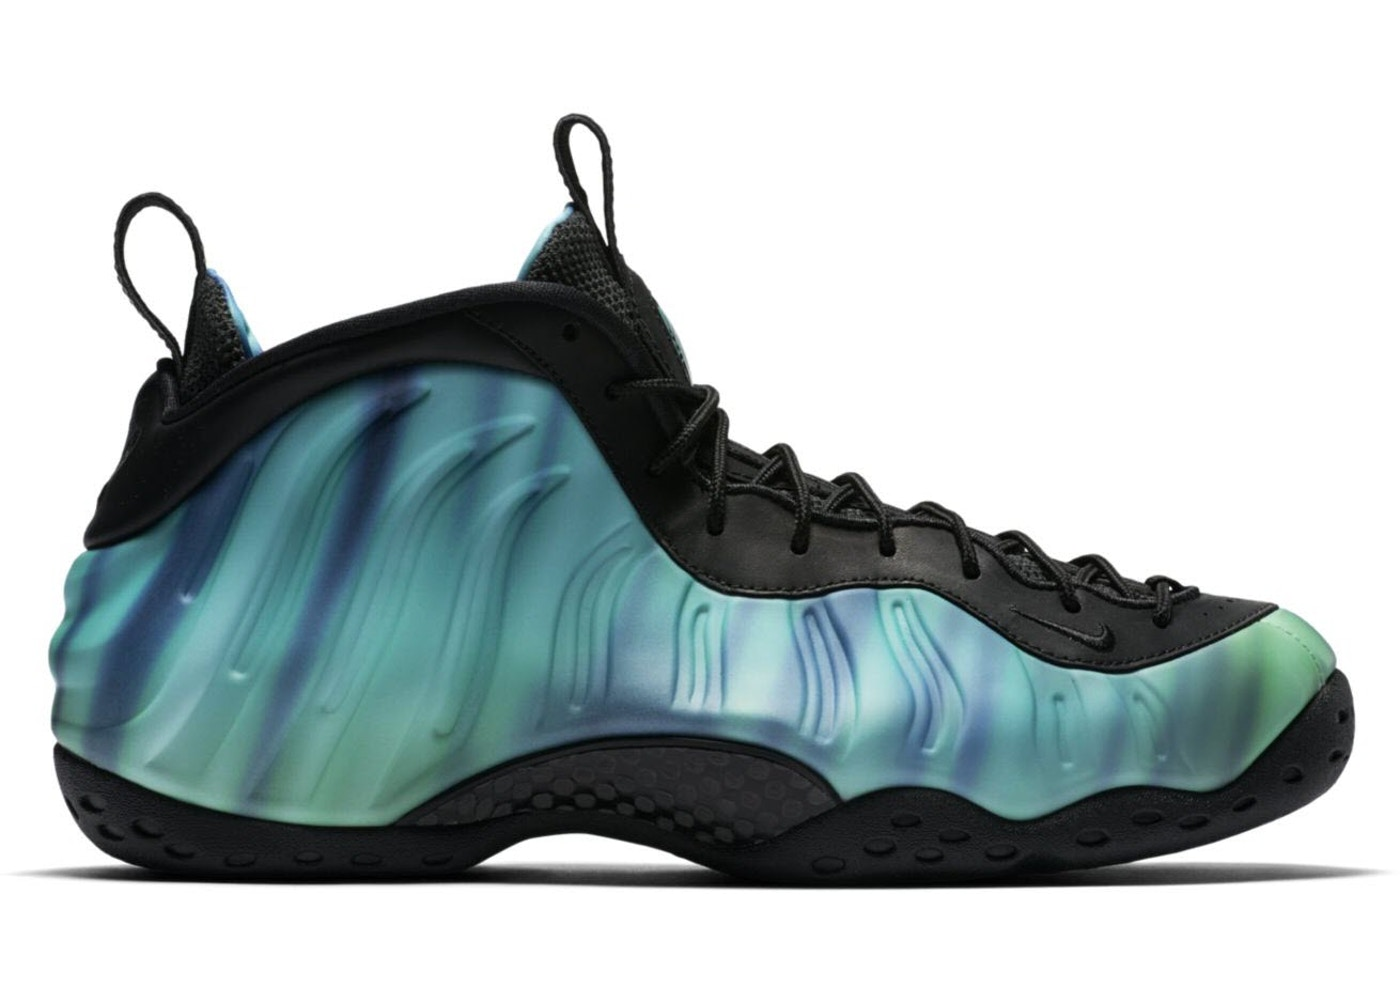 d4bae51a631 Air Foamposite One Northern Lights - 840559-001